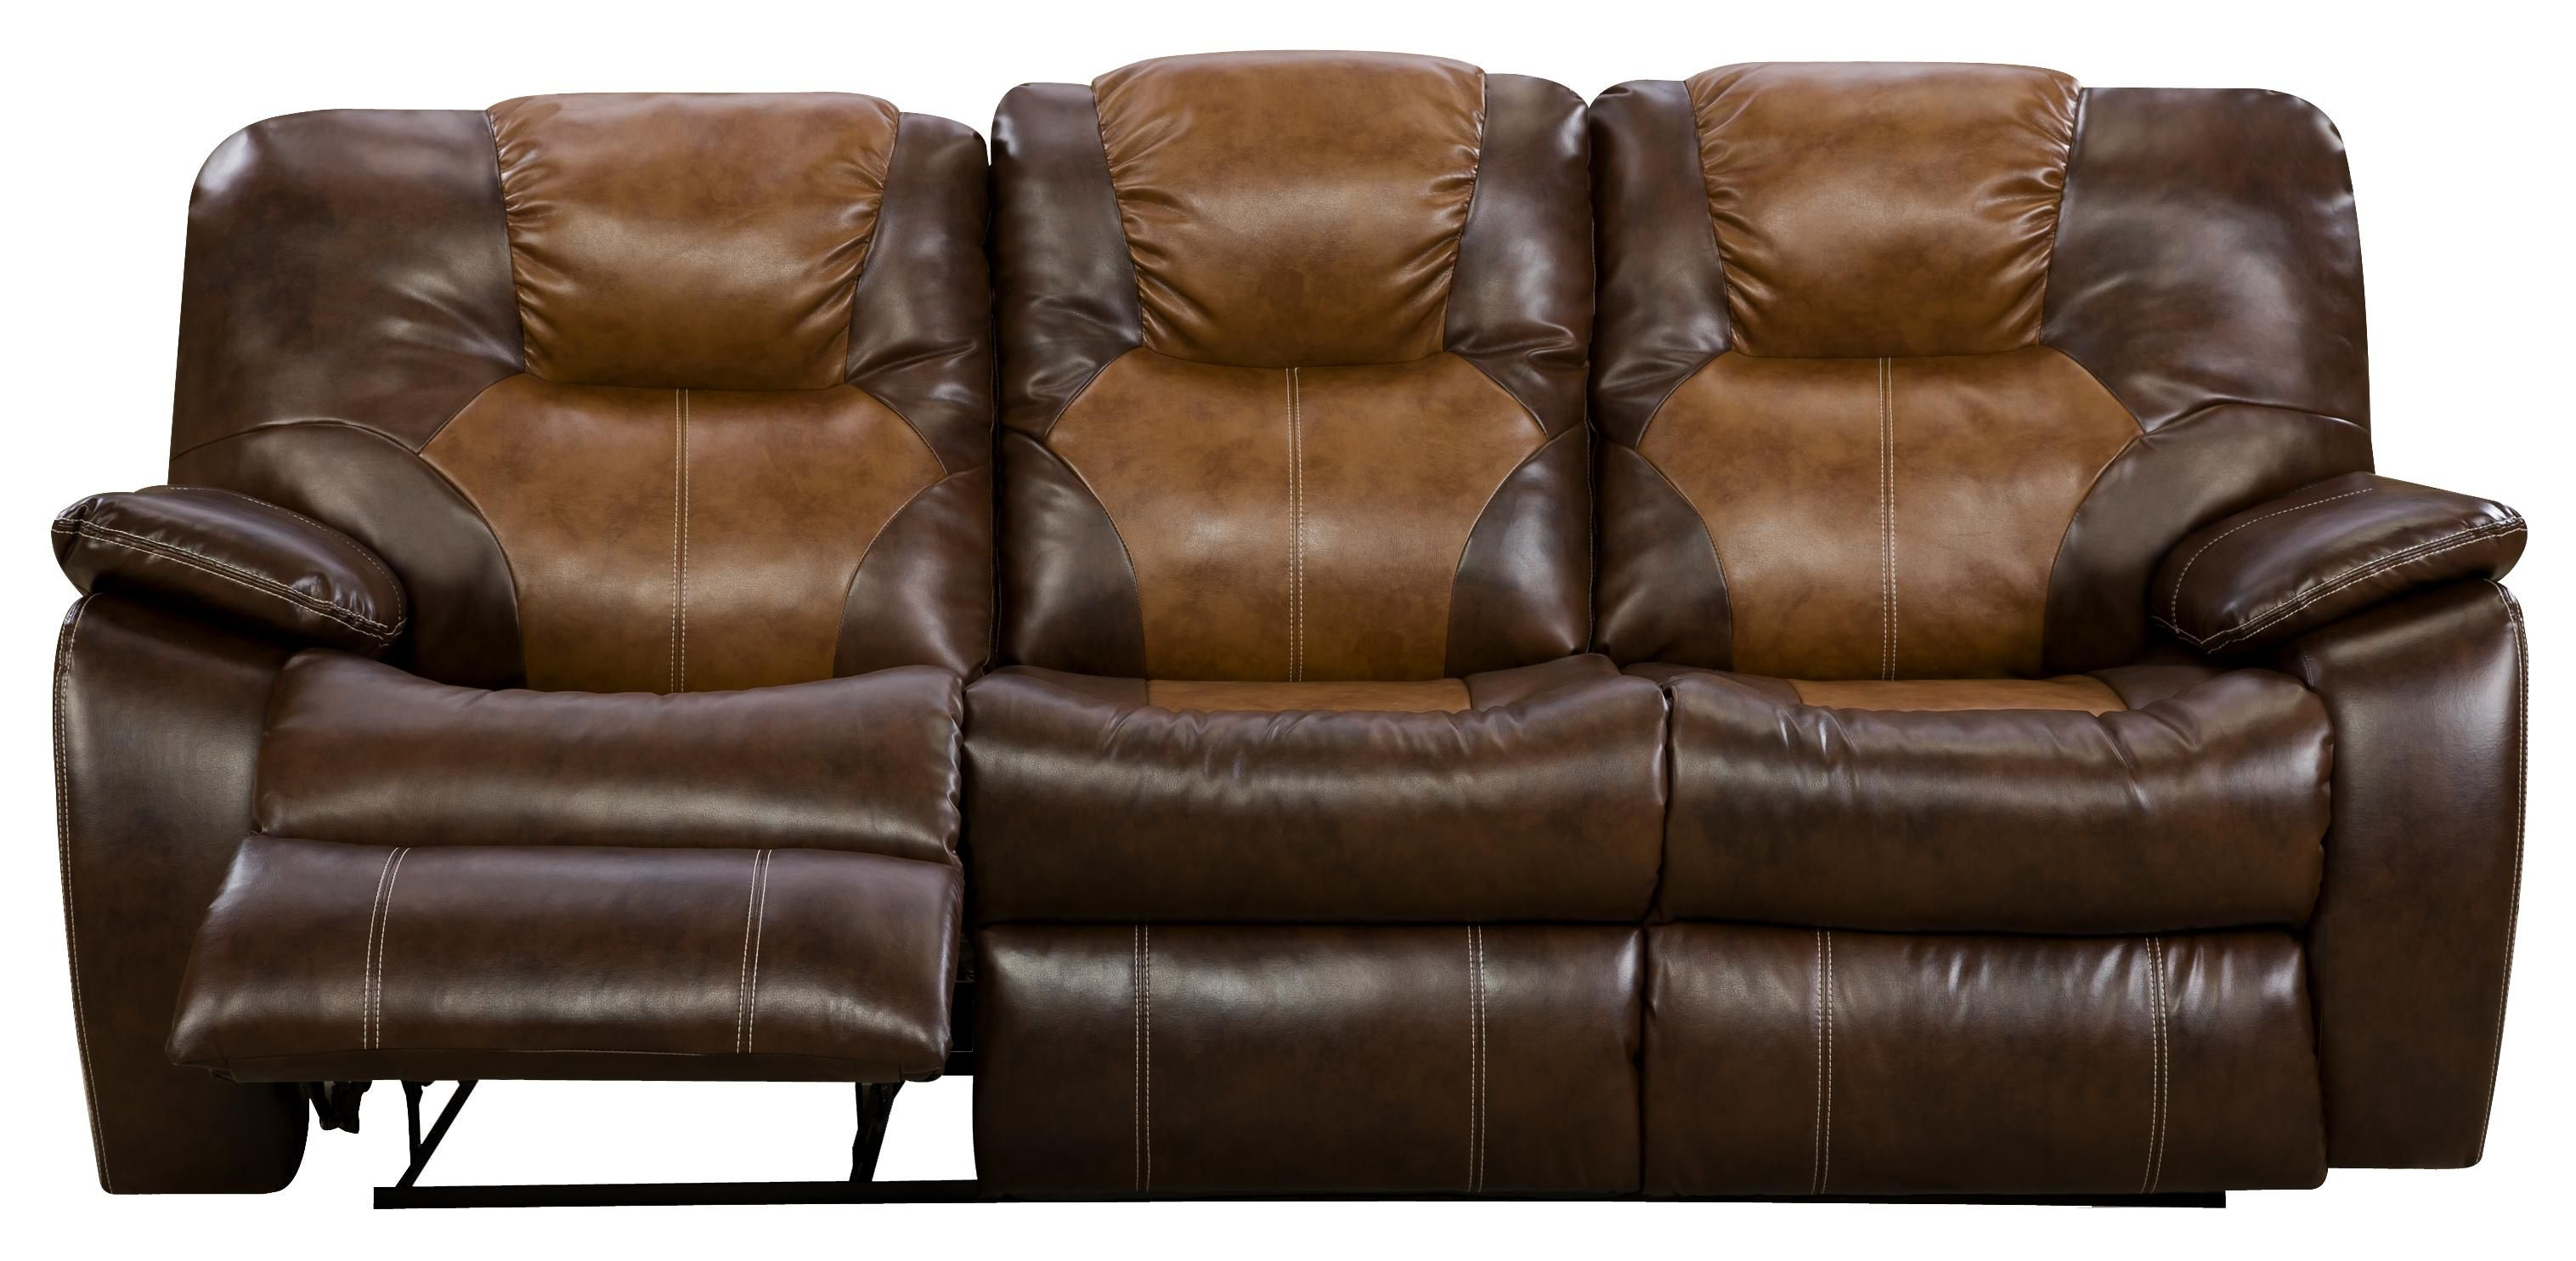 New couch I like. Drop down table, Reclining sofa, Sofa